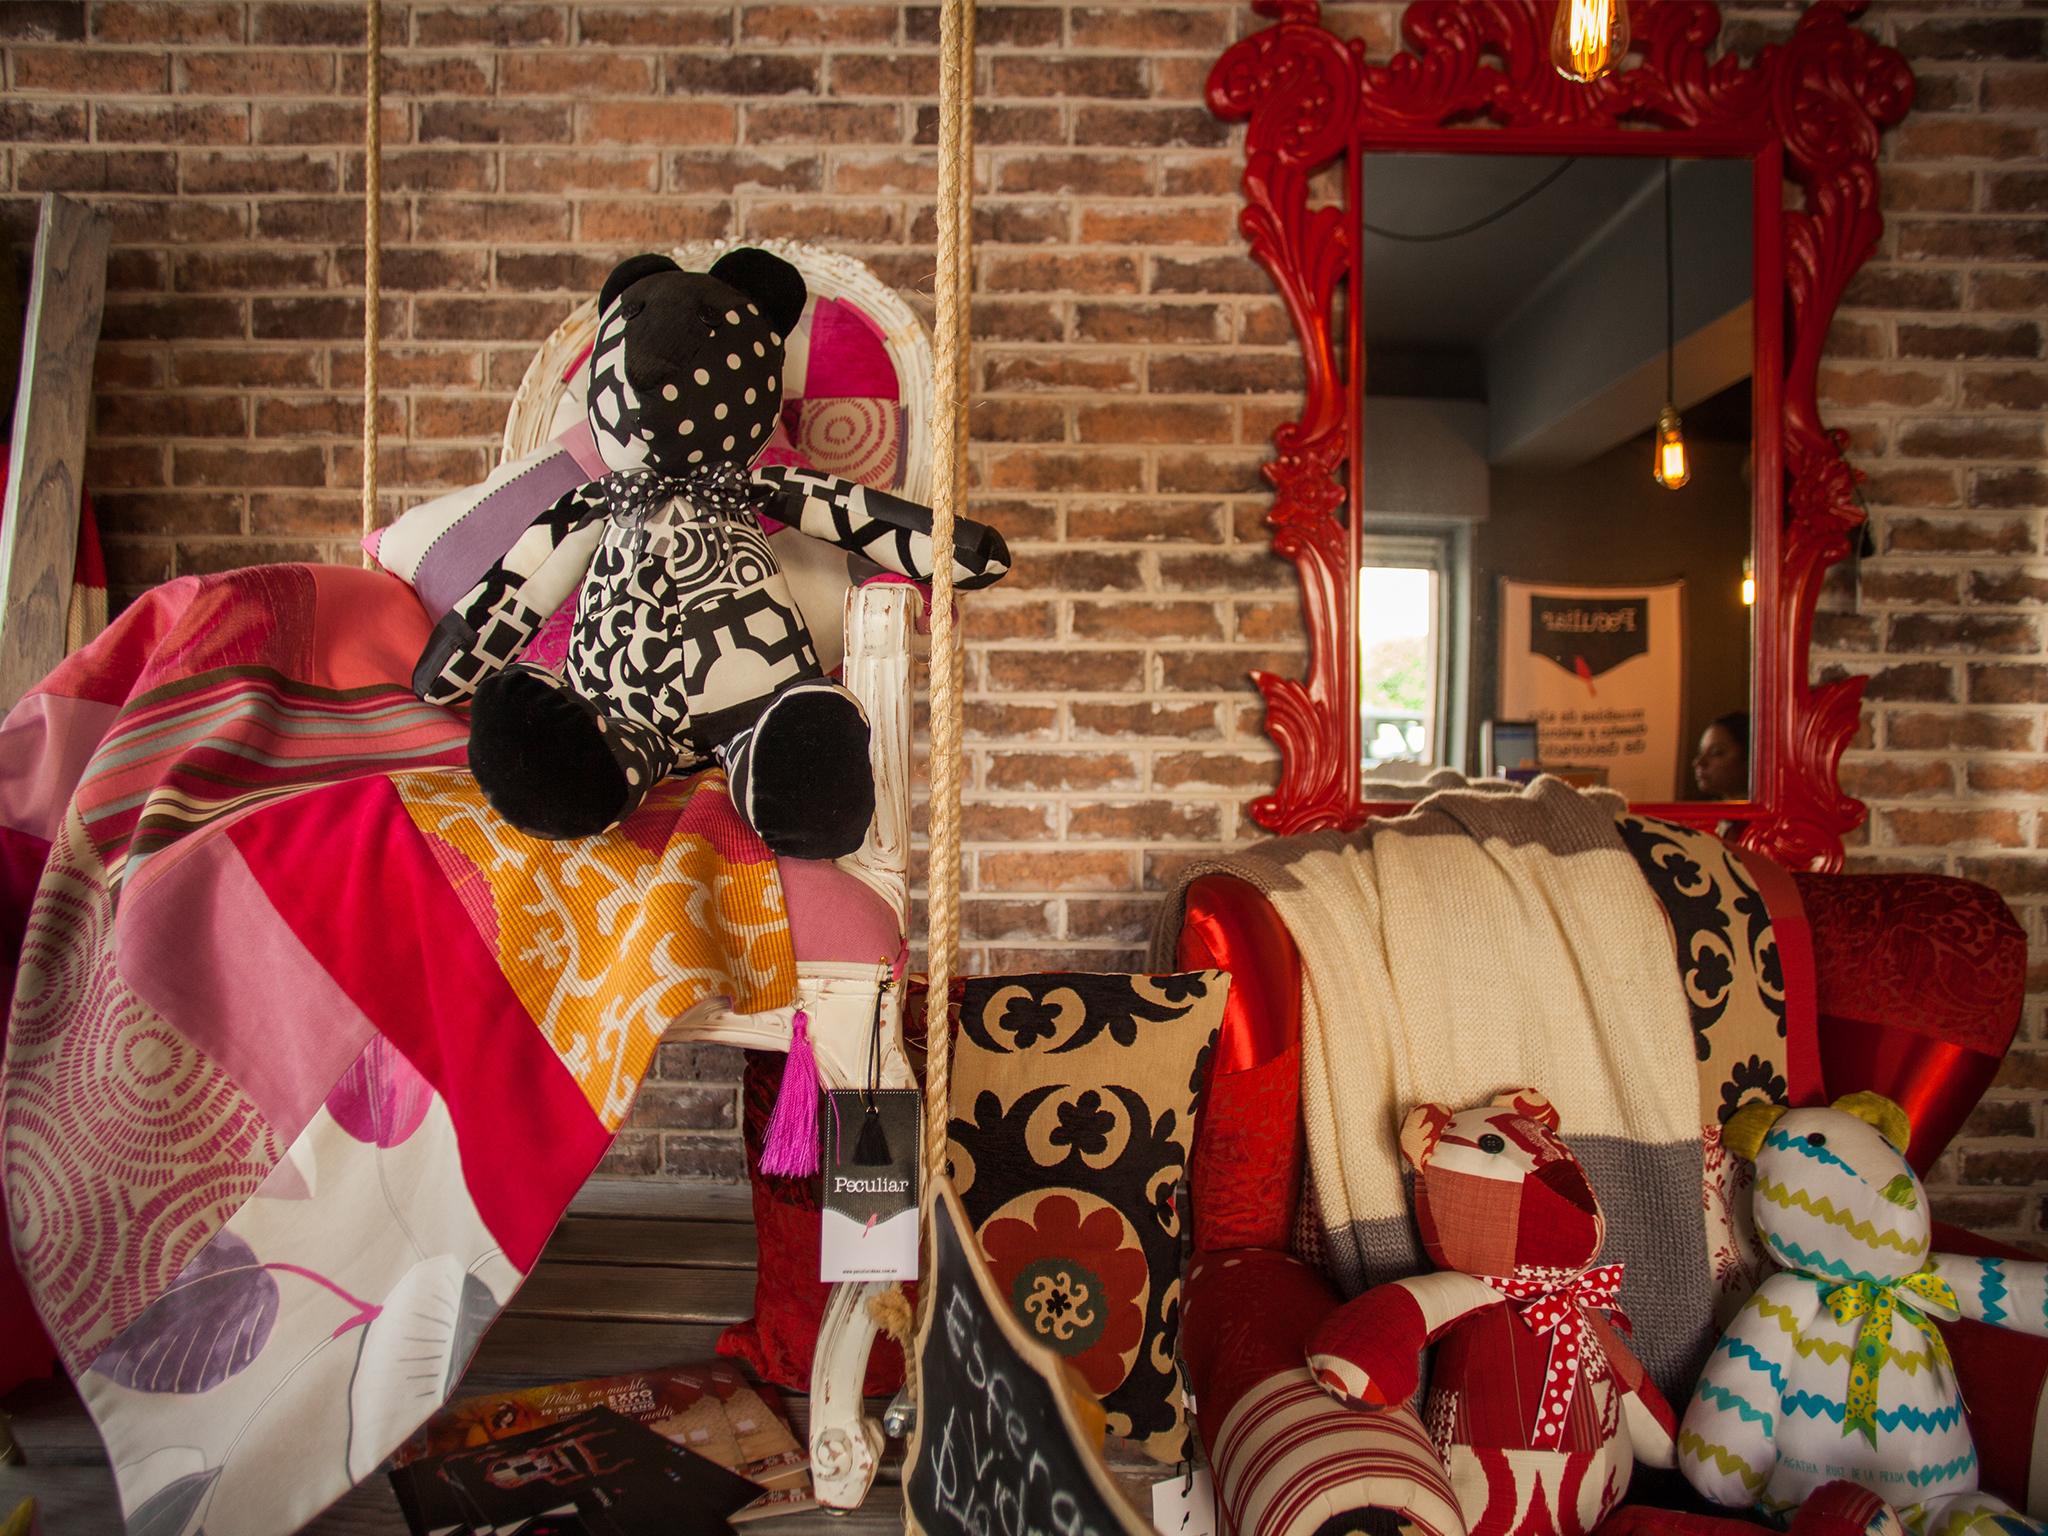 Peculiar es un showroom de muebles de patchwork